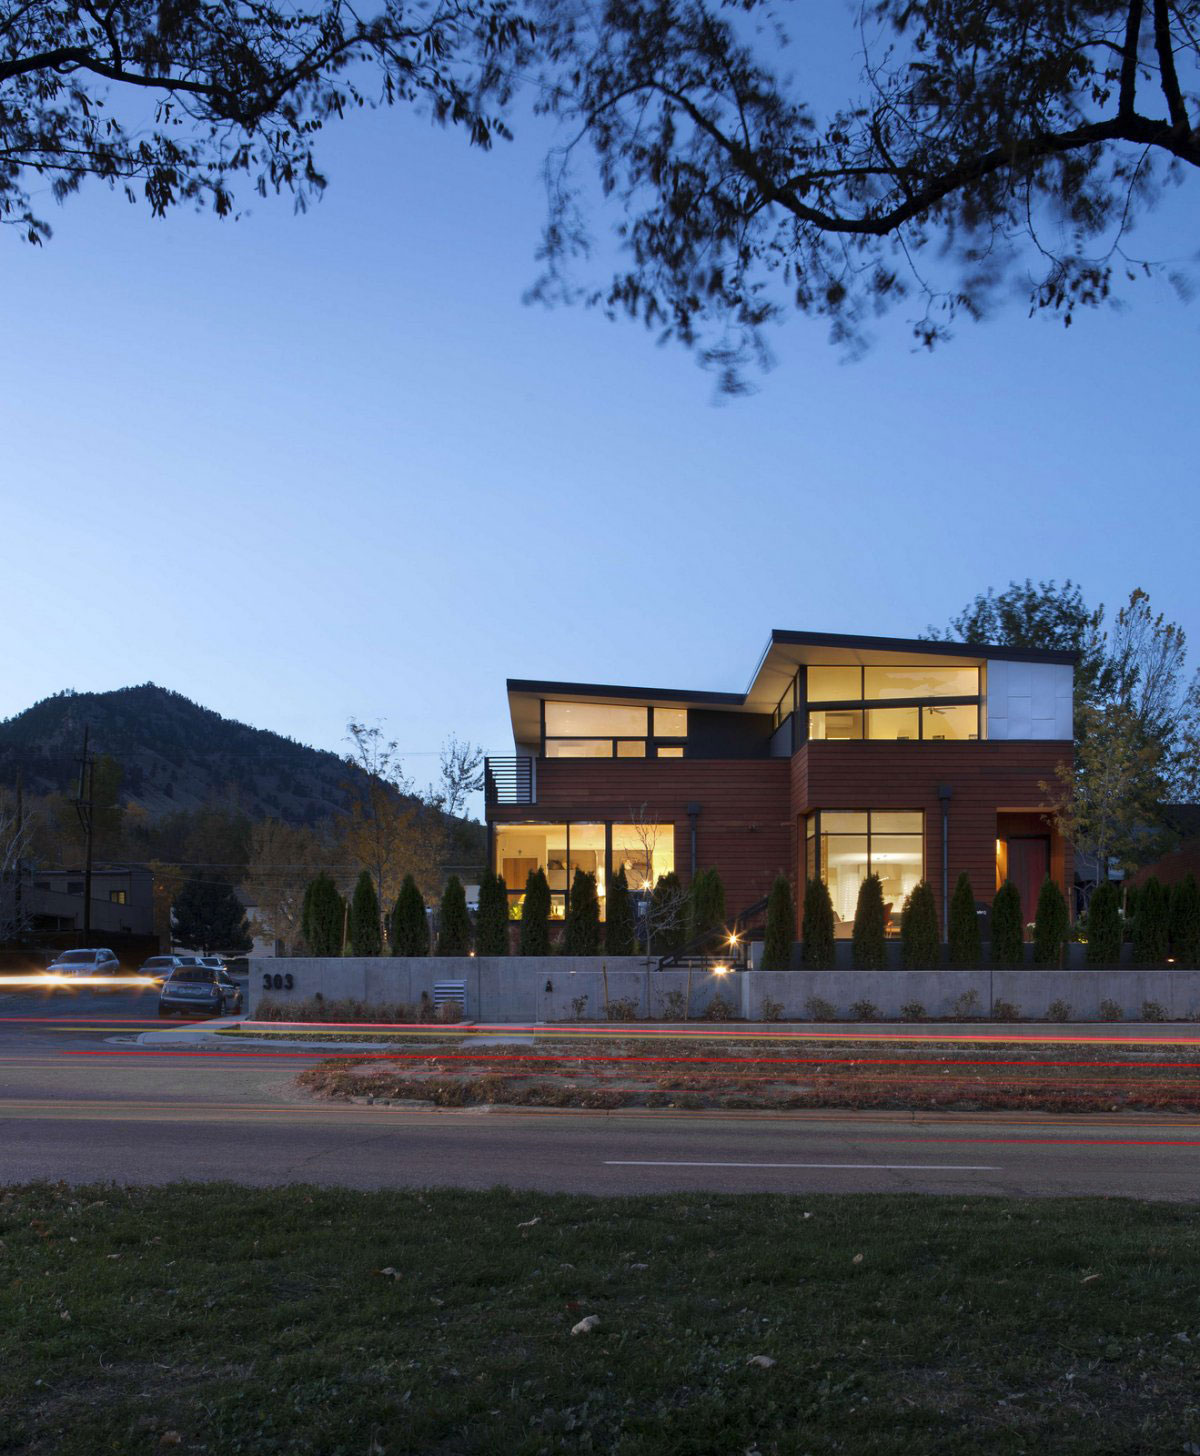 Street View, Dusk, Lighting, Evening Lighting, Stylish Townhomes near Boulder, Colorado